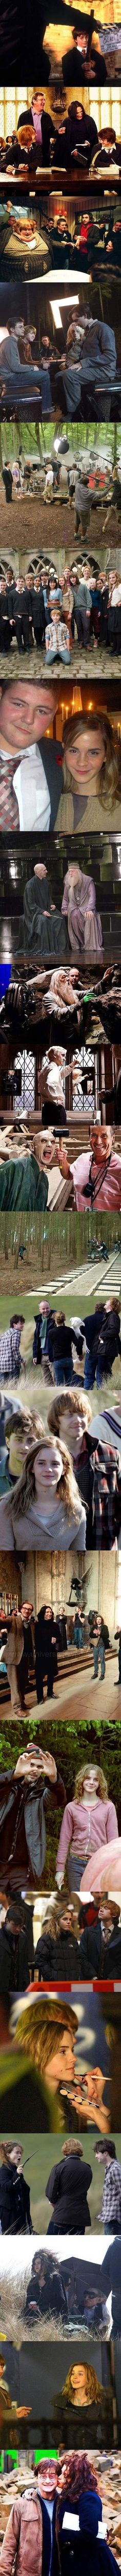 the scenes Behind the scenes.my favorite is the shot with Dumbledore/Voldemort laughing together.Behind the scenes.my favorite is the shot with Dumbledore/Voldemort laughing together. Ridiculous Harry Potter, Harry Potter Love, Harry Potter Fandom, Harry Potter Memes, Harry Potter World, Voldemort, Fandoms, Hogwarts, Expecto Patronum Harry Potter